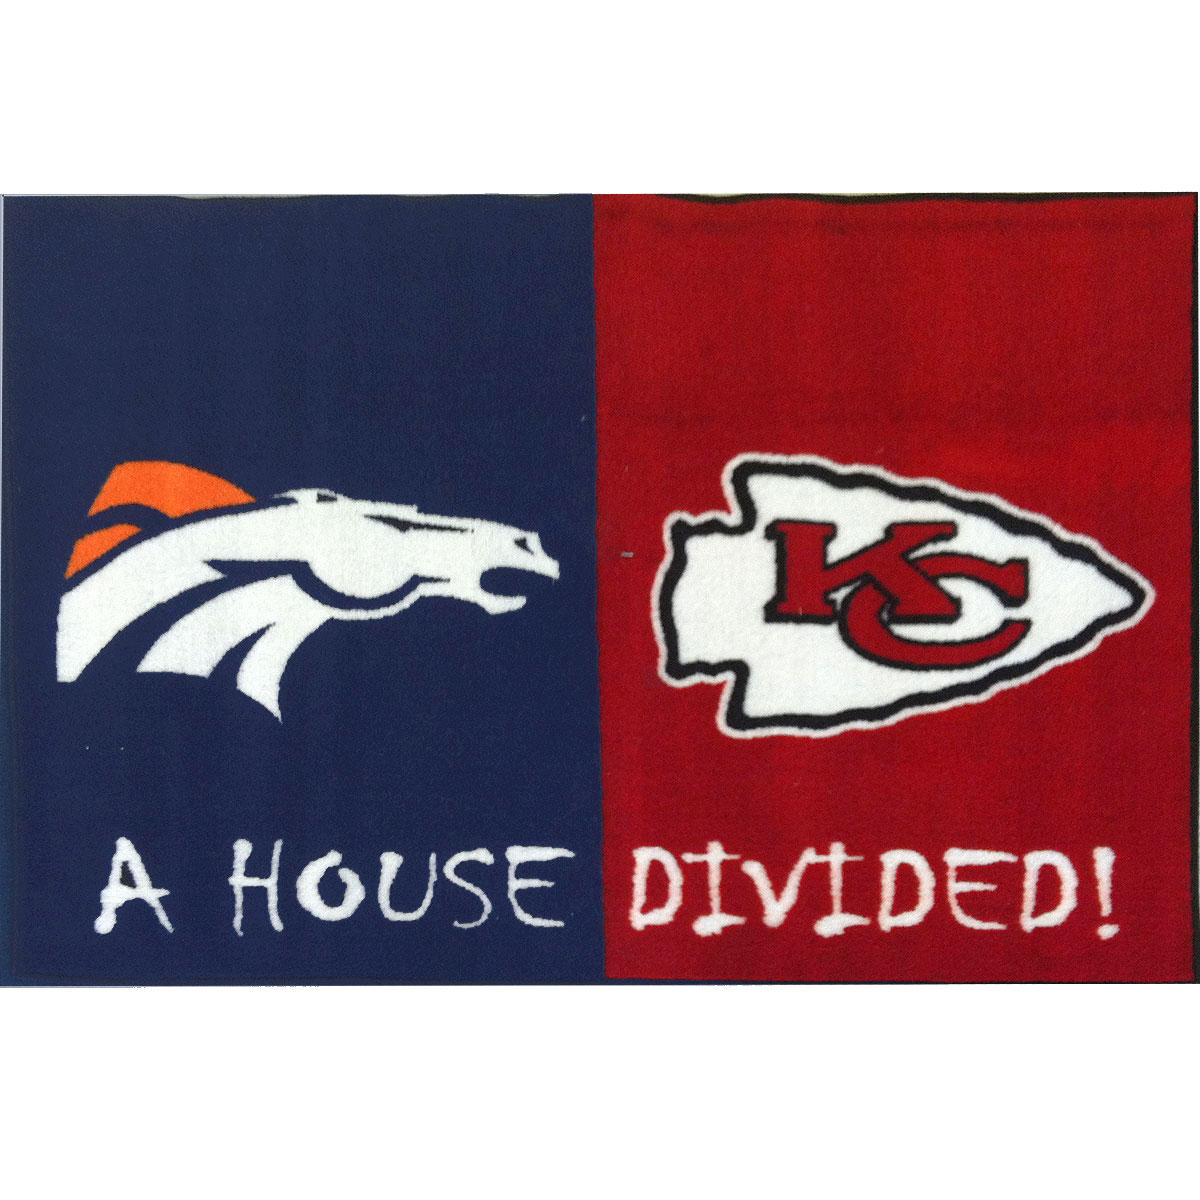 NFL Broncos-Chiefs House Divided Football Accent Floor Rug